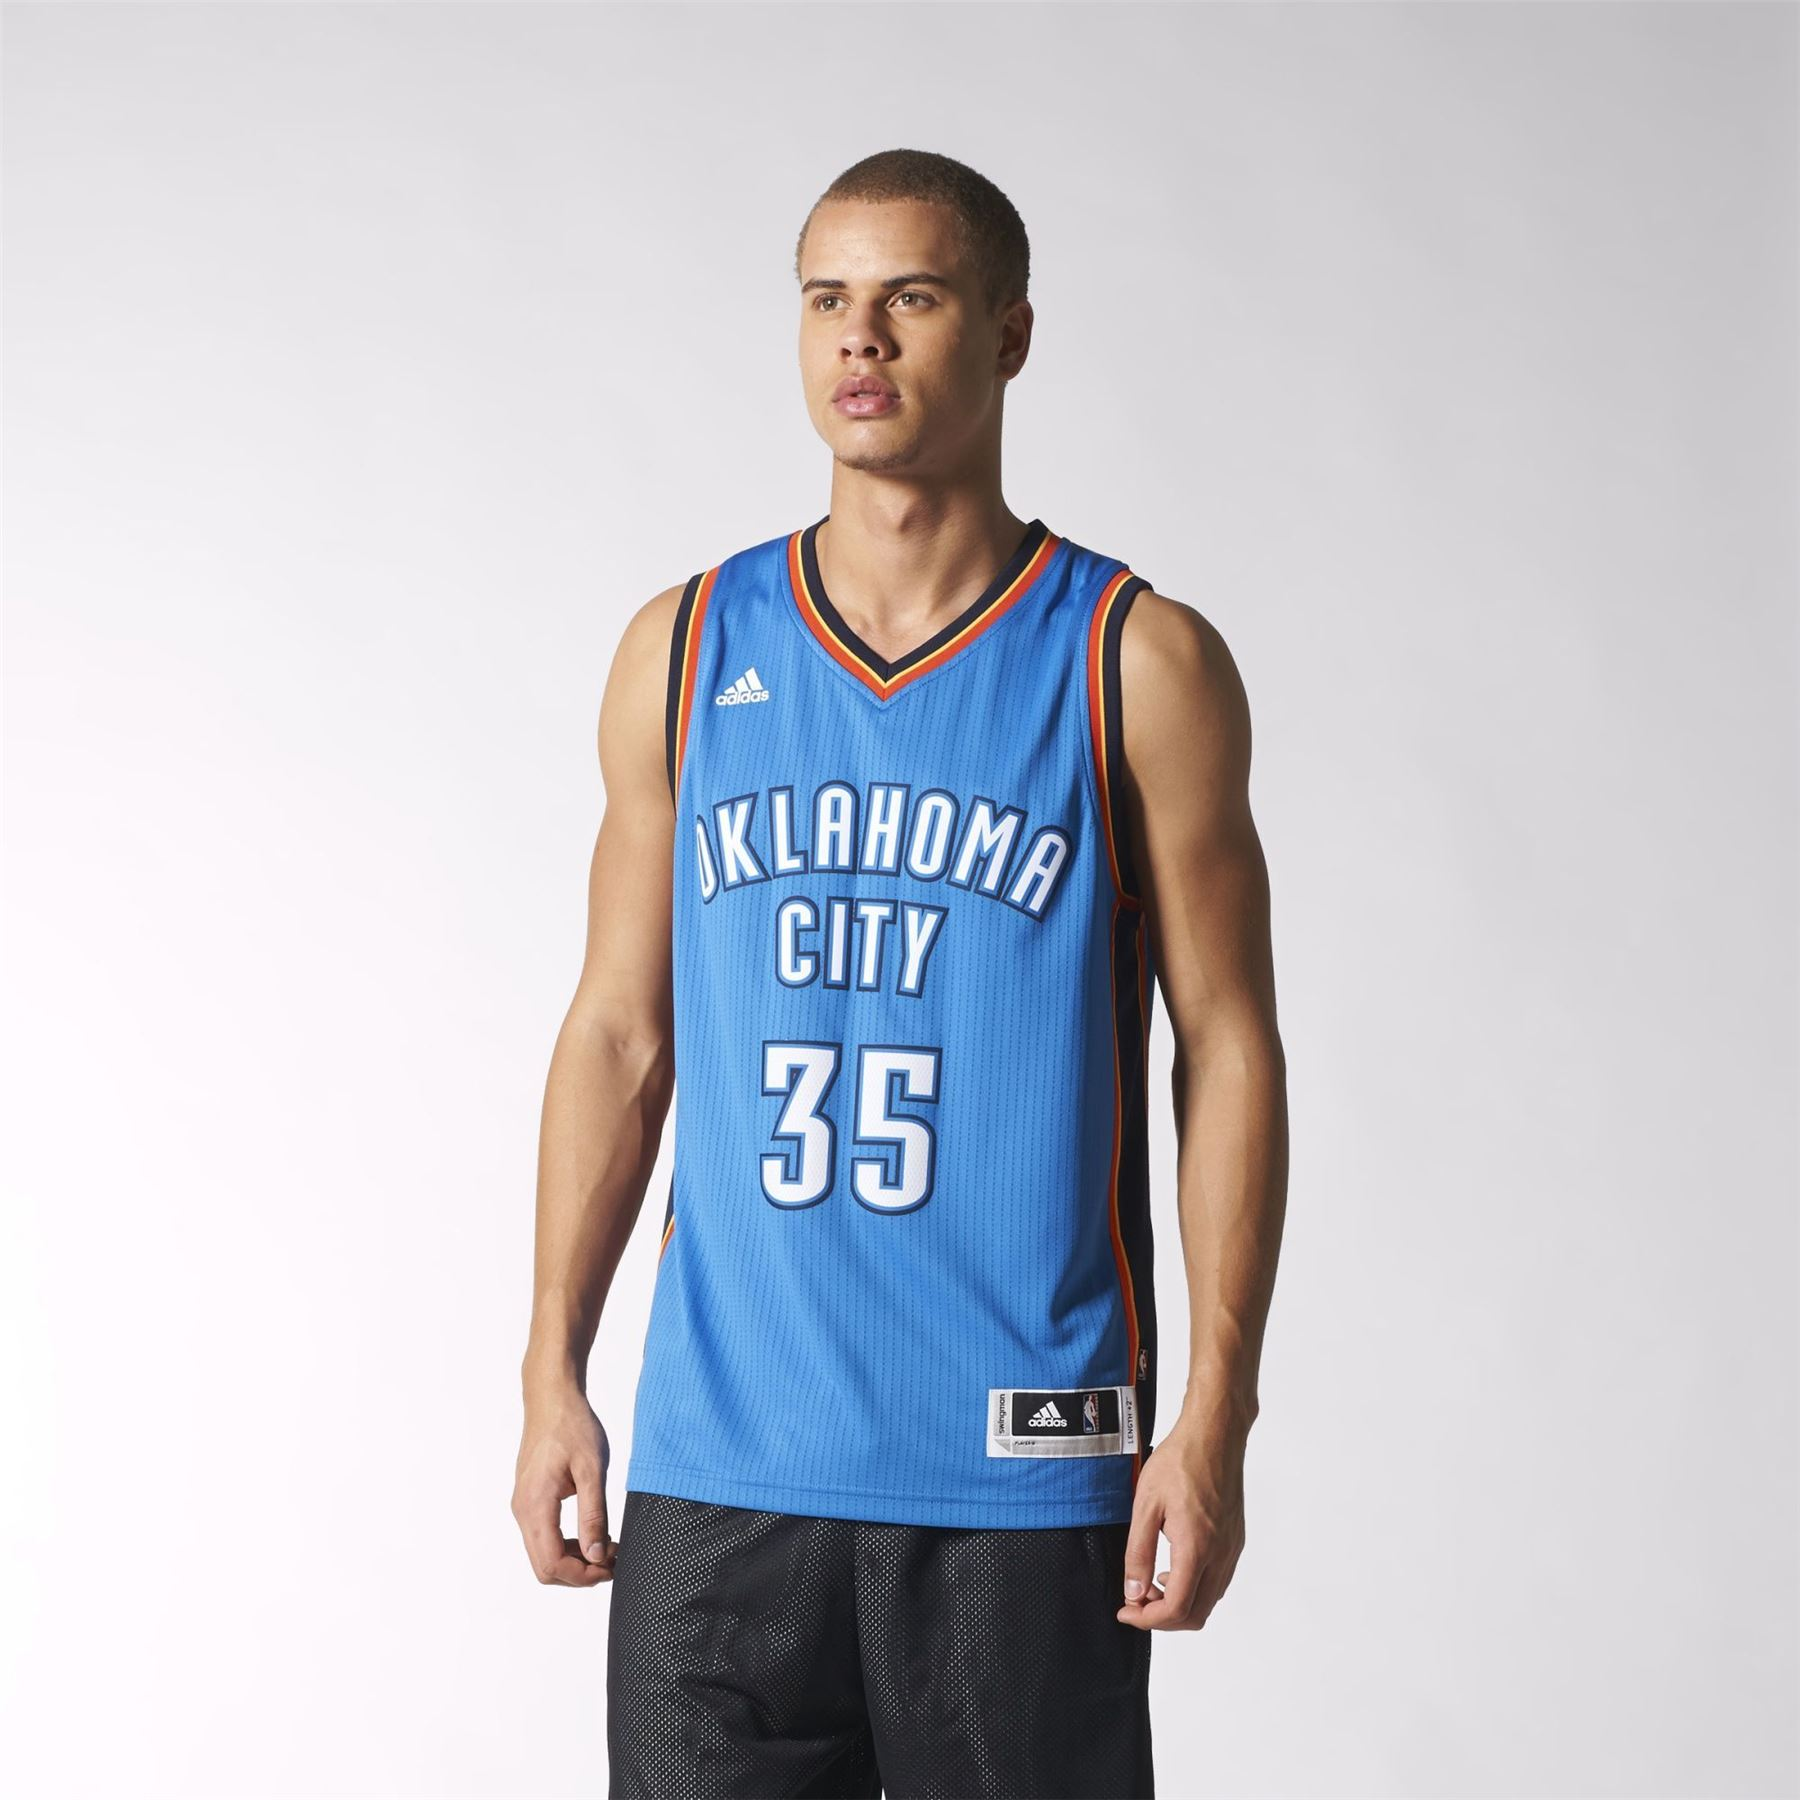 Details about adidas BASKETBALL JERSEYS REPLICA SWINGMAN NBA BULLS THUNDER REAL MADRID ROCKETS